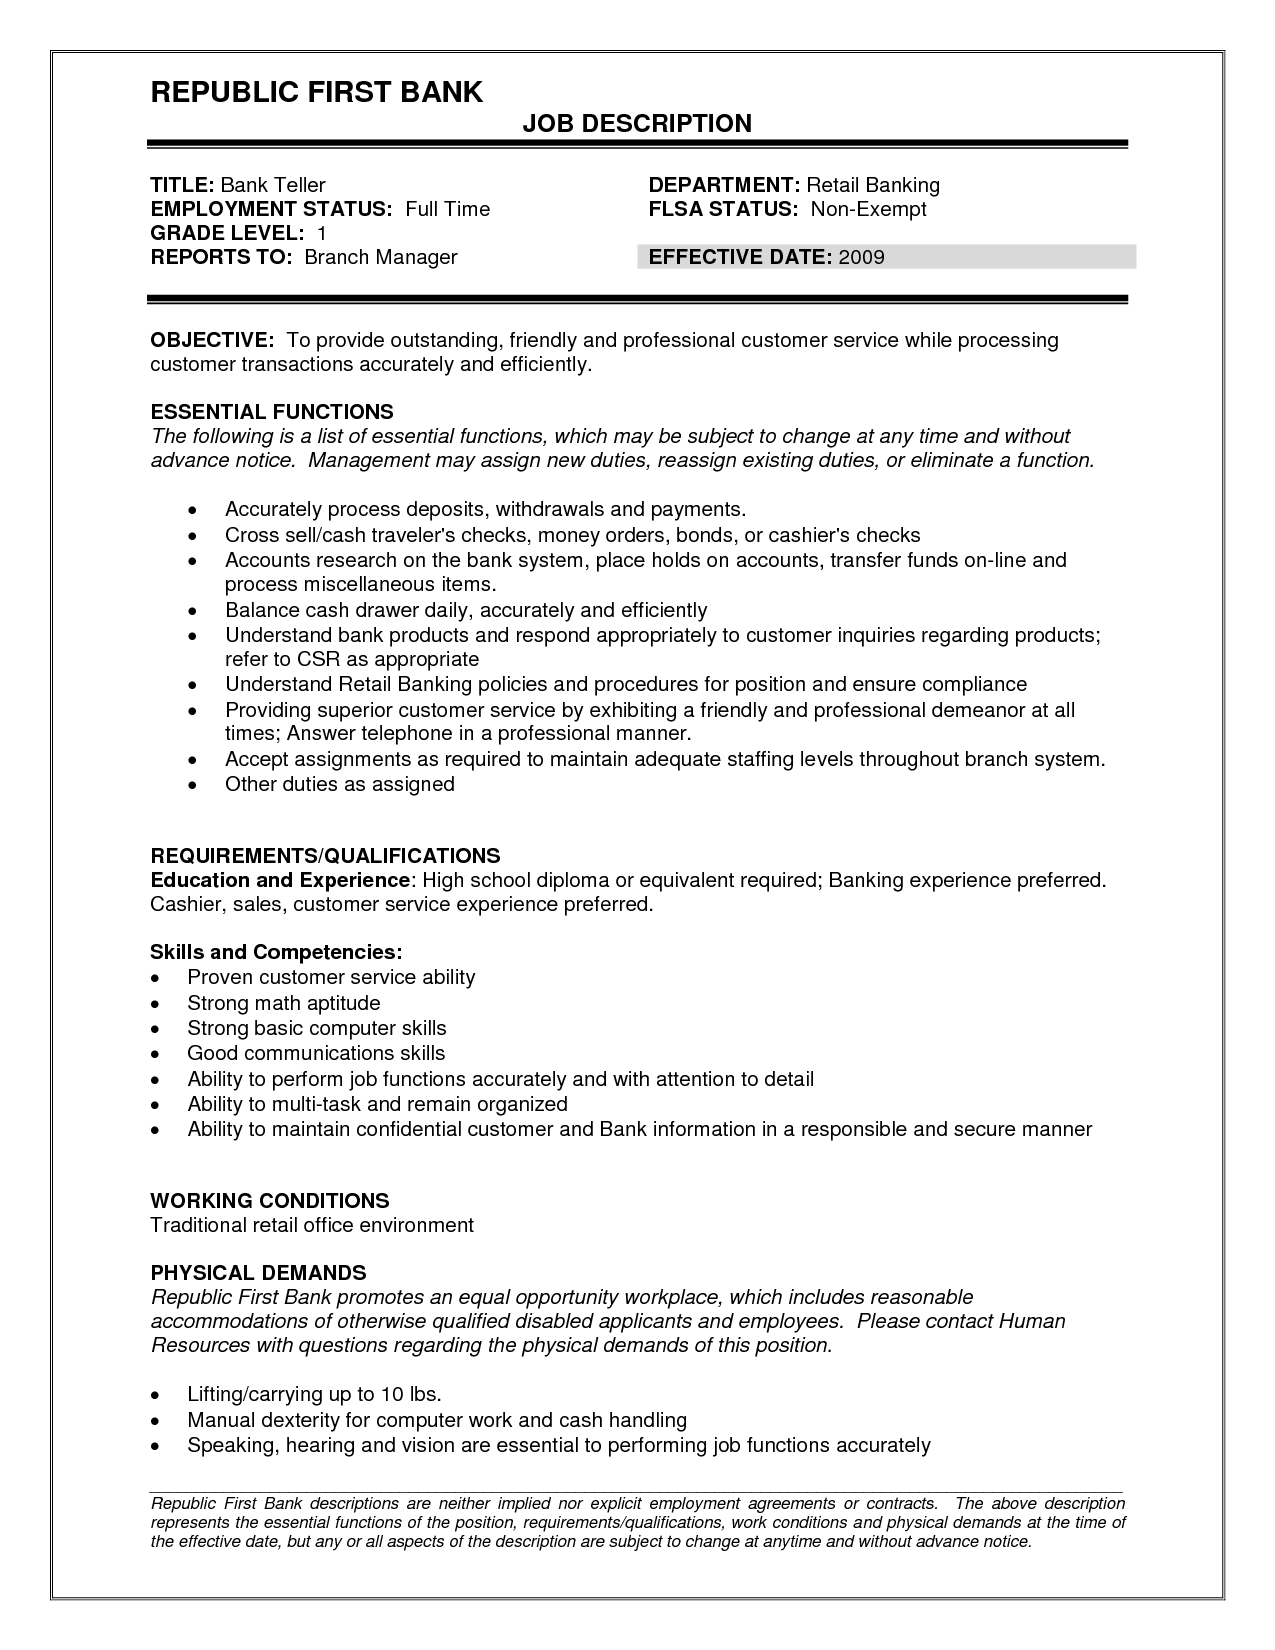 accountabilities bank teller resume description skills of a bank teller. Resume Example. Resume CV Cover Letter